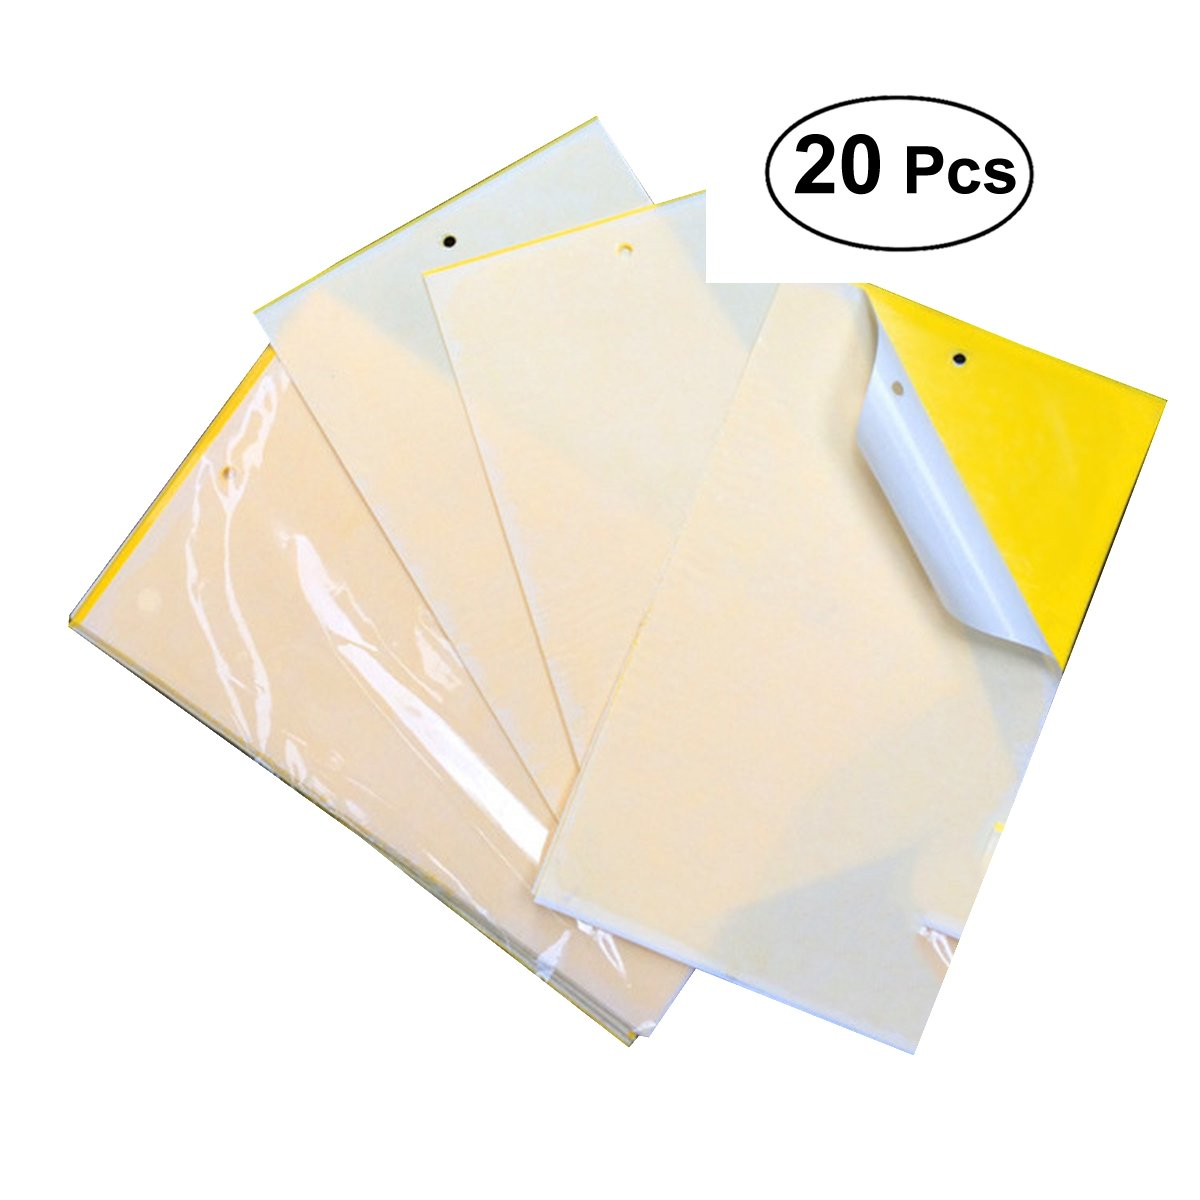 OUNONA 20pcs Dual Sided Yellow Sticky Traps for Plant Insect Like Fungus Gnat, Whitefly, Aphid, Leaf Miner, Other Flying Insectsd, Bugs 25 x 20cm